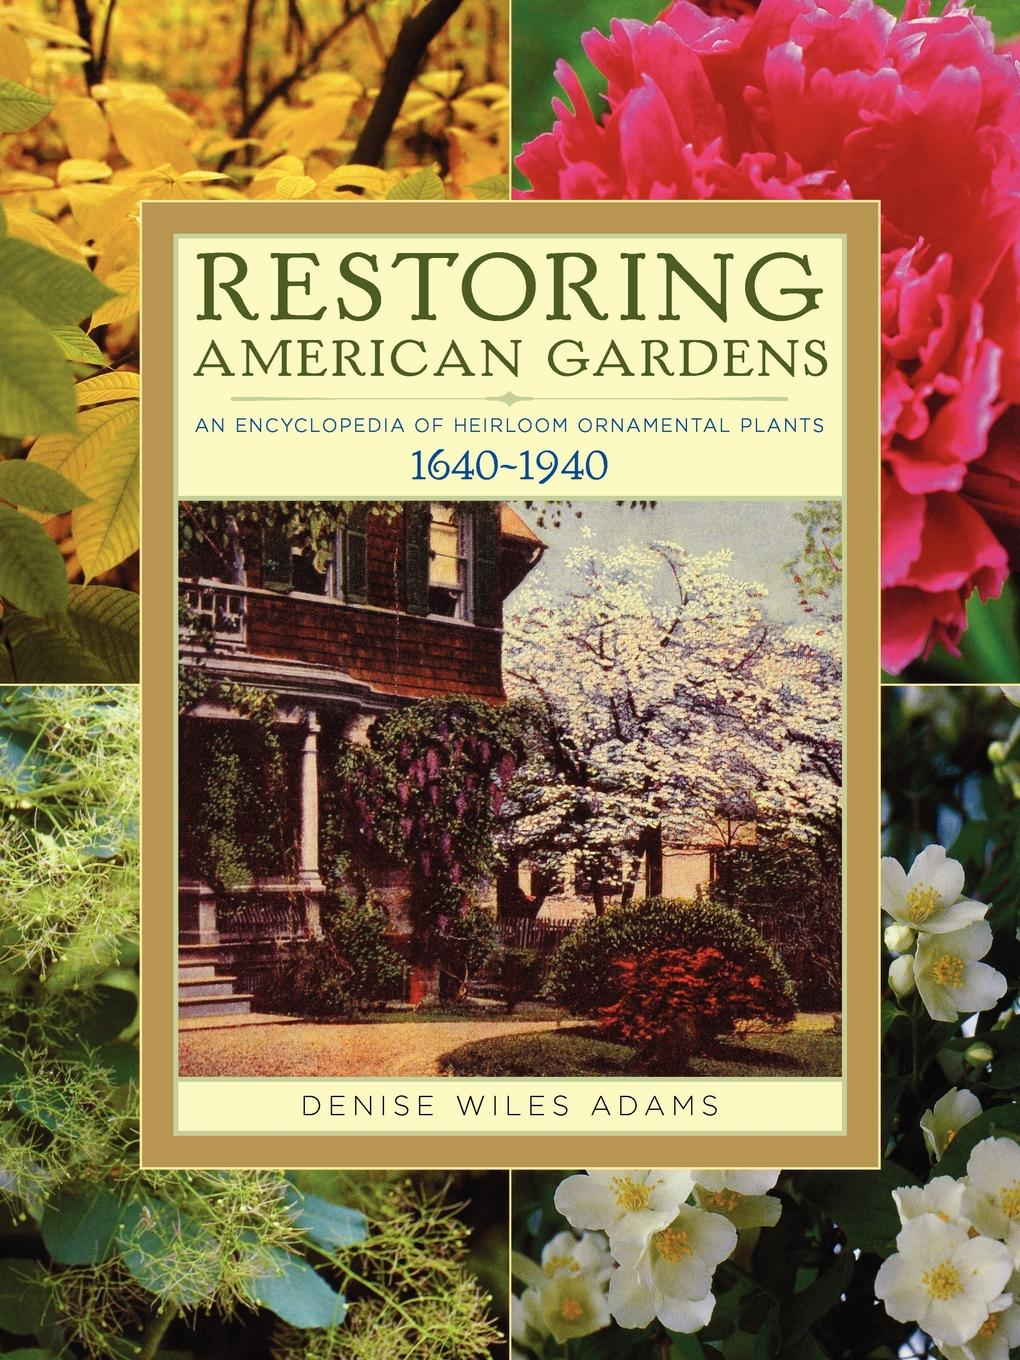 Denise Wiles Adams Restoring American Gardens. An Encyclopedia of Heirloom Ornamental Plants, 1640-1940 history of the world in 1000 objects